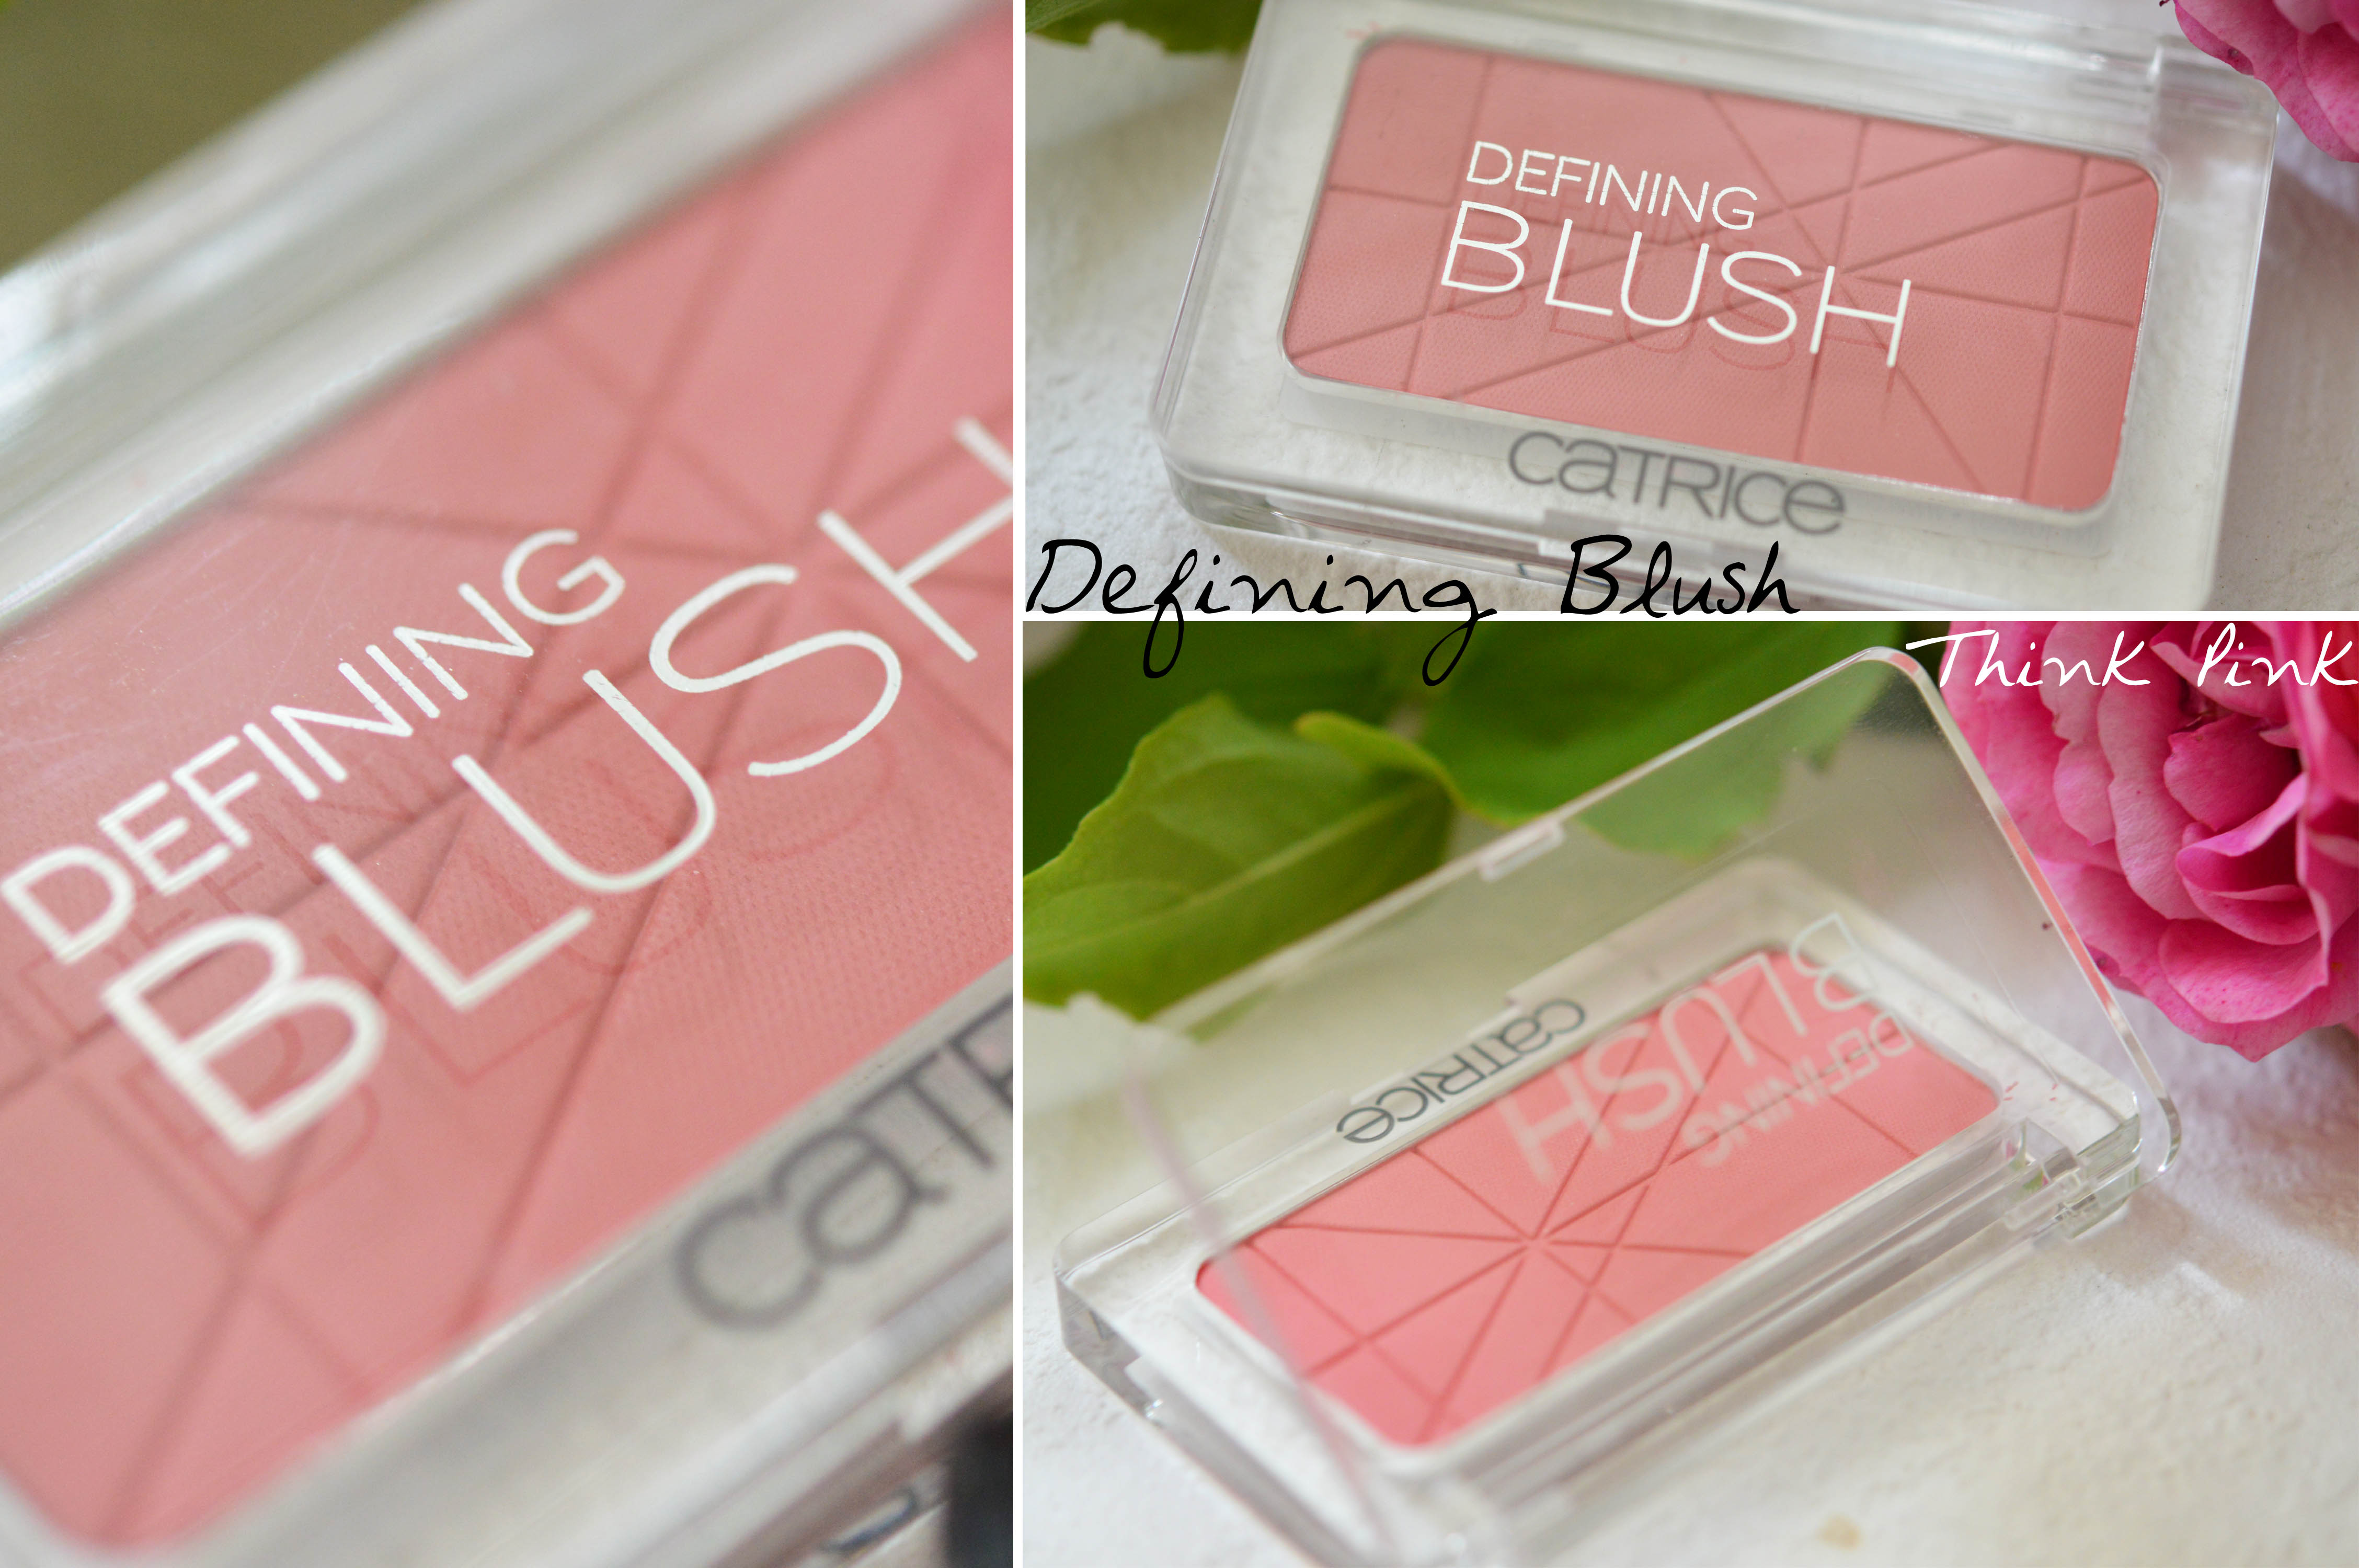 ALITTLEB_BLOG_BEAUTE_CATRICE_LA_MARQUE_QUIL_FAUT_ENVIER_A_NOS_COPINES_FRONTALIERES_EPISODE_2_DEFINING_BLUSH_THINK_PINK_PACKAGING